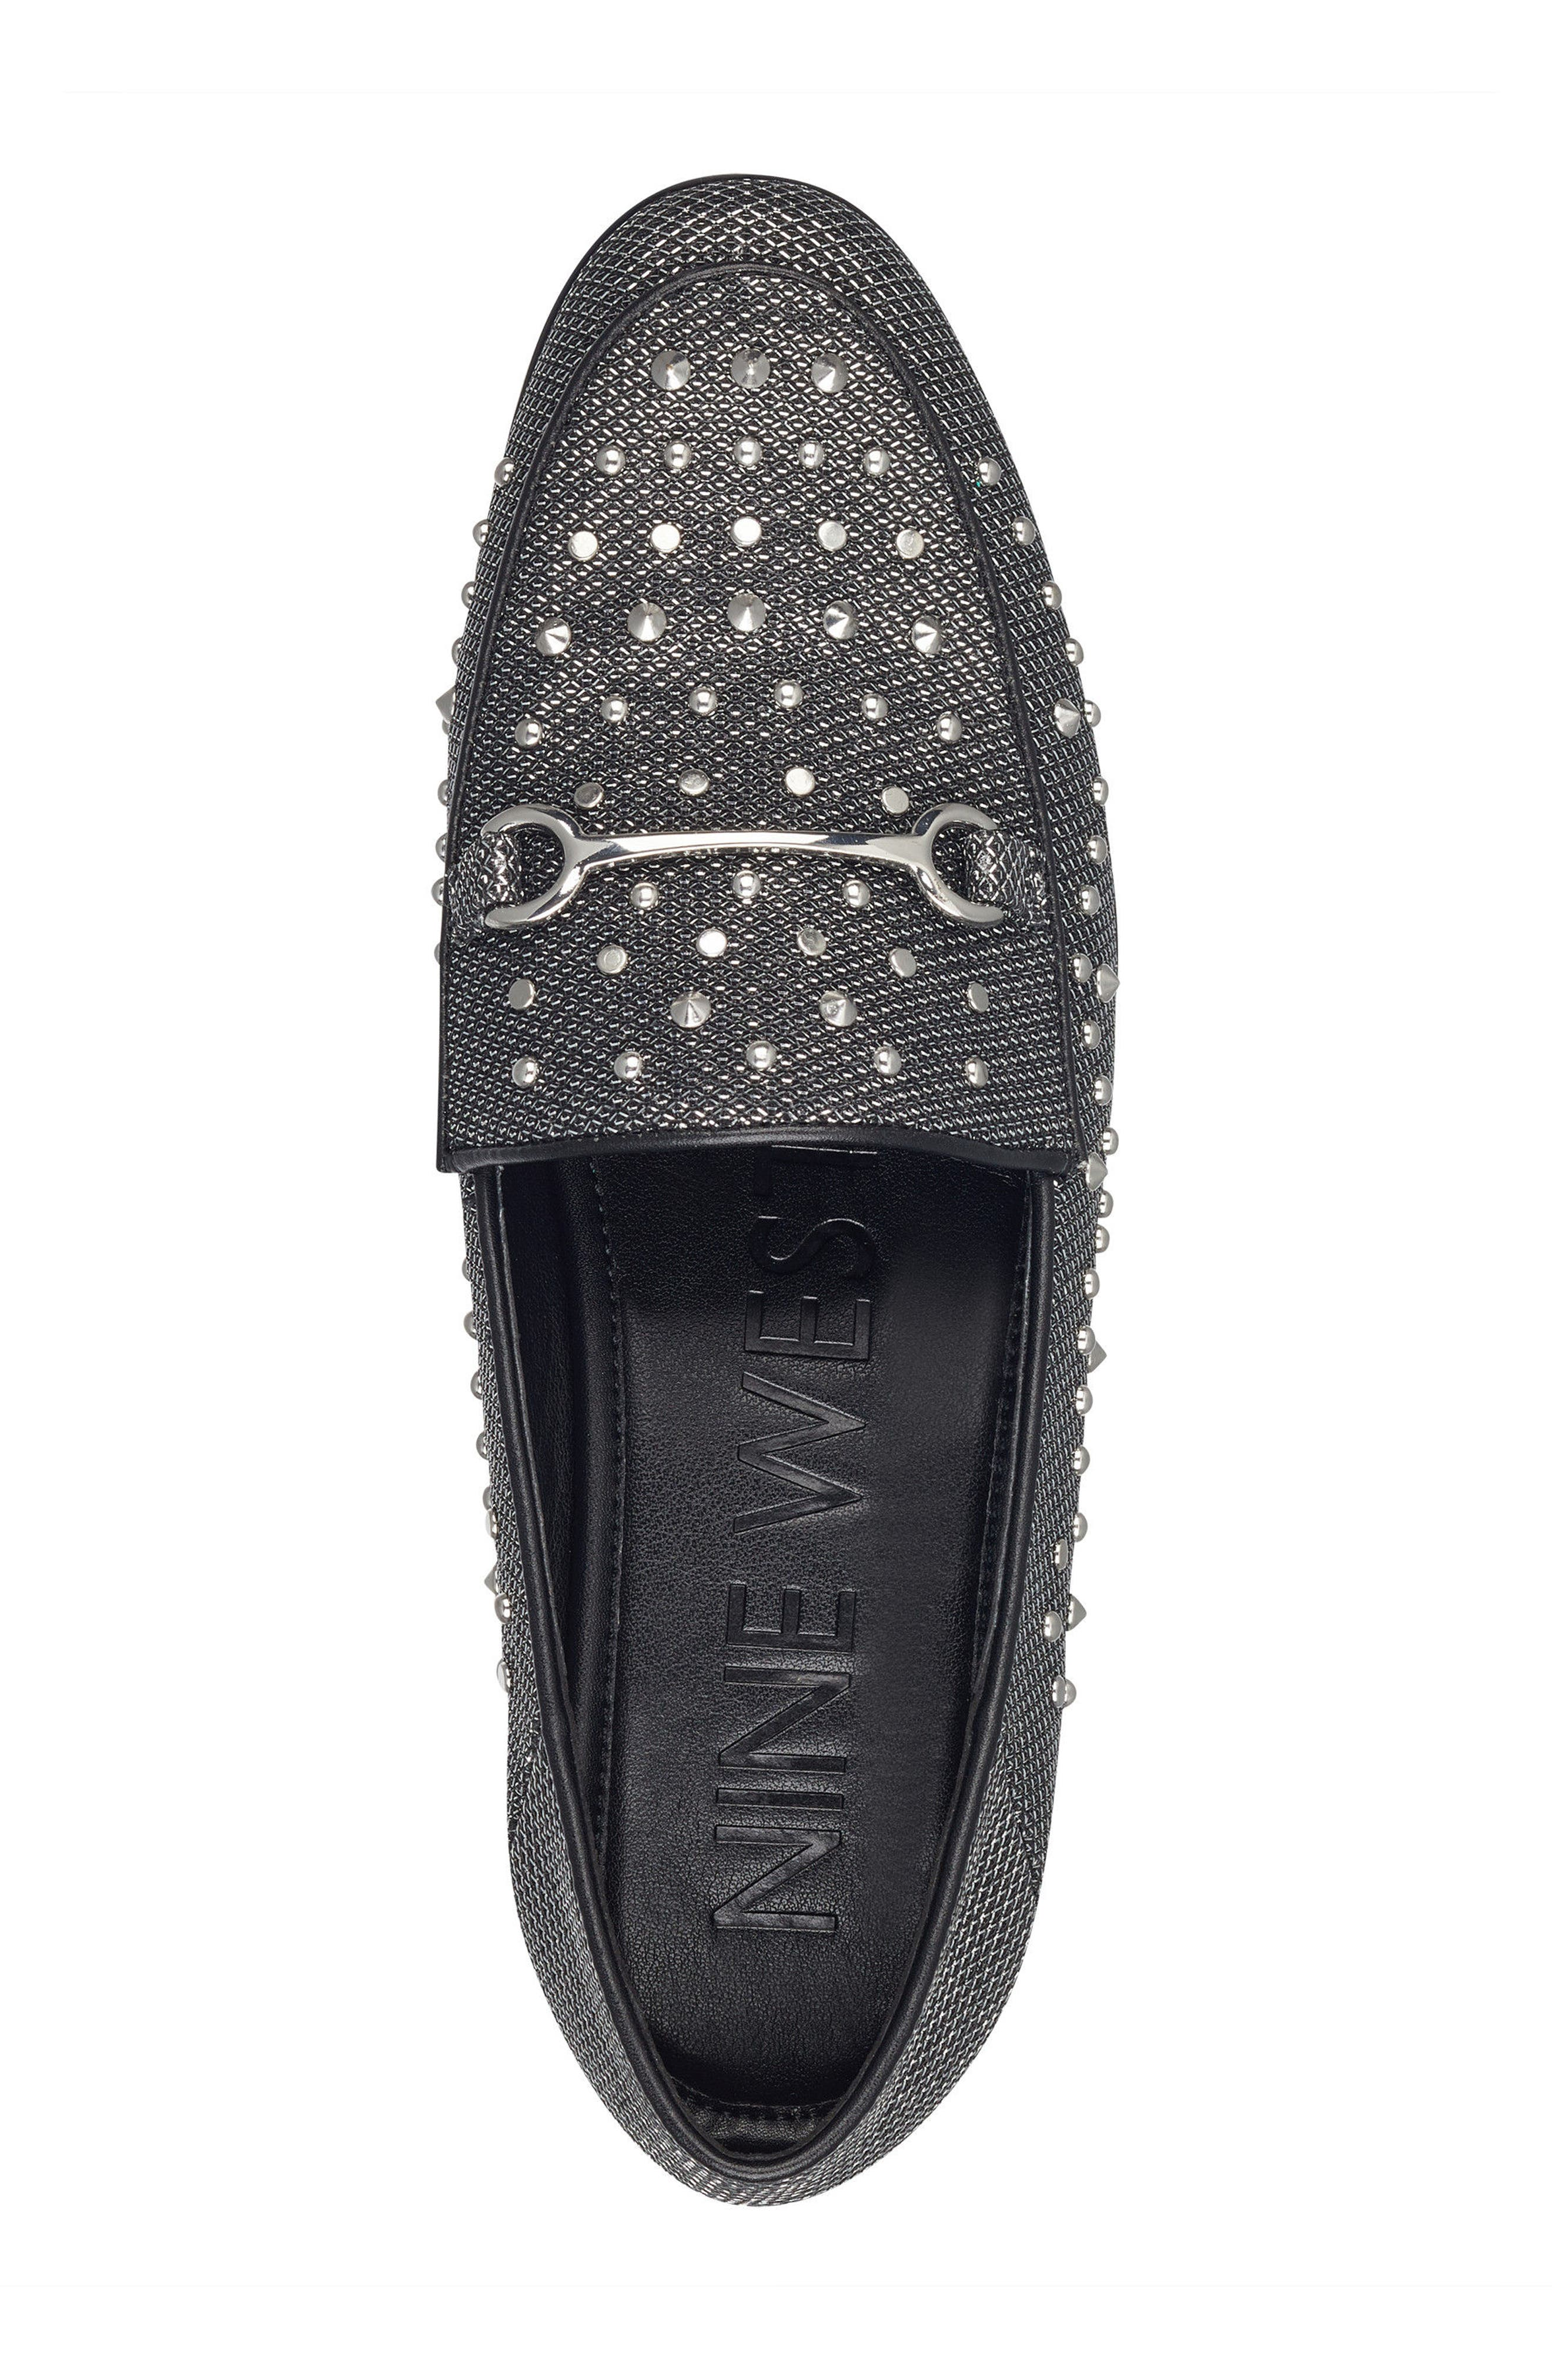 Westoy Studded Loafer,                             Alternate thumbnail 5, color,                             001